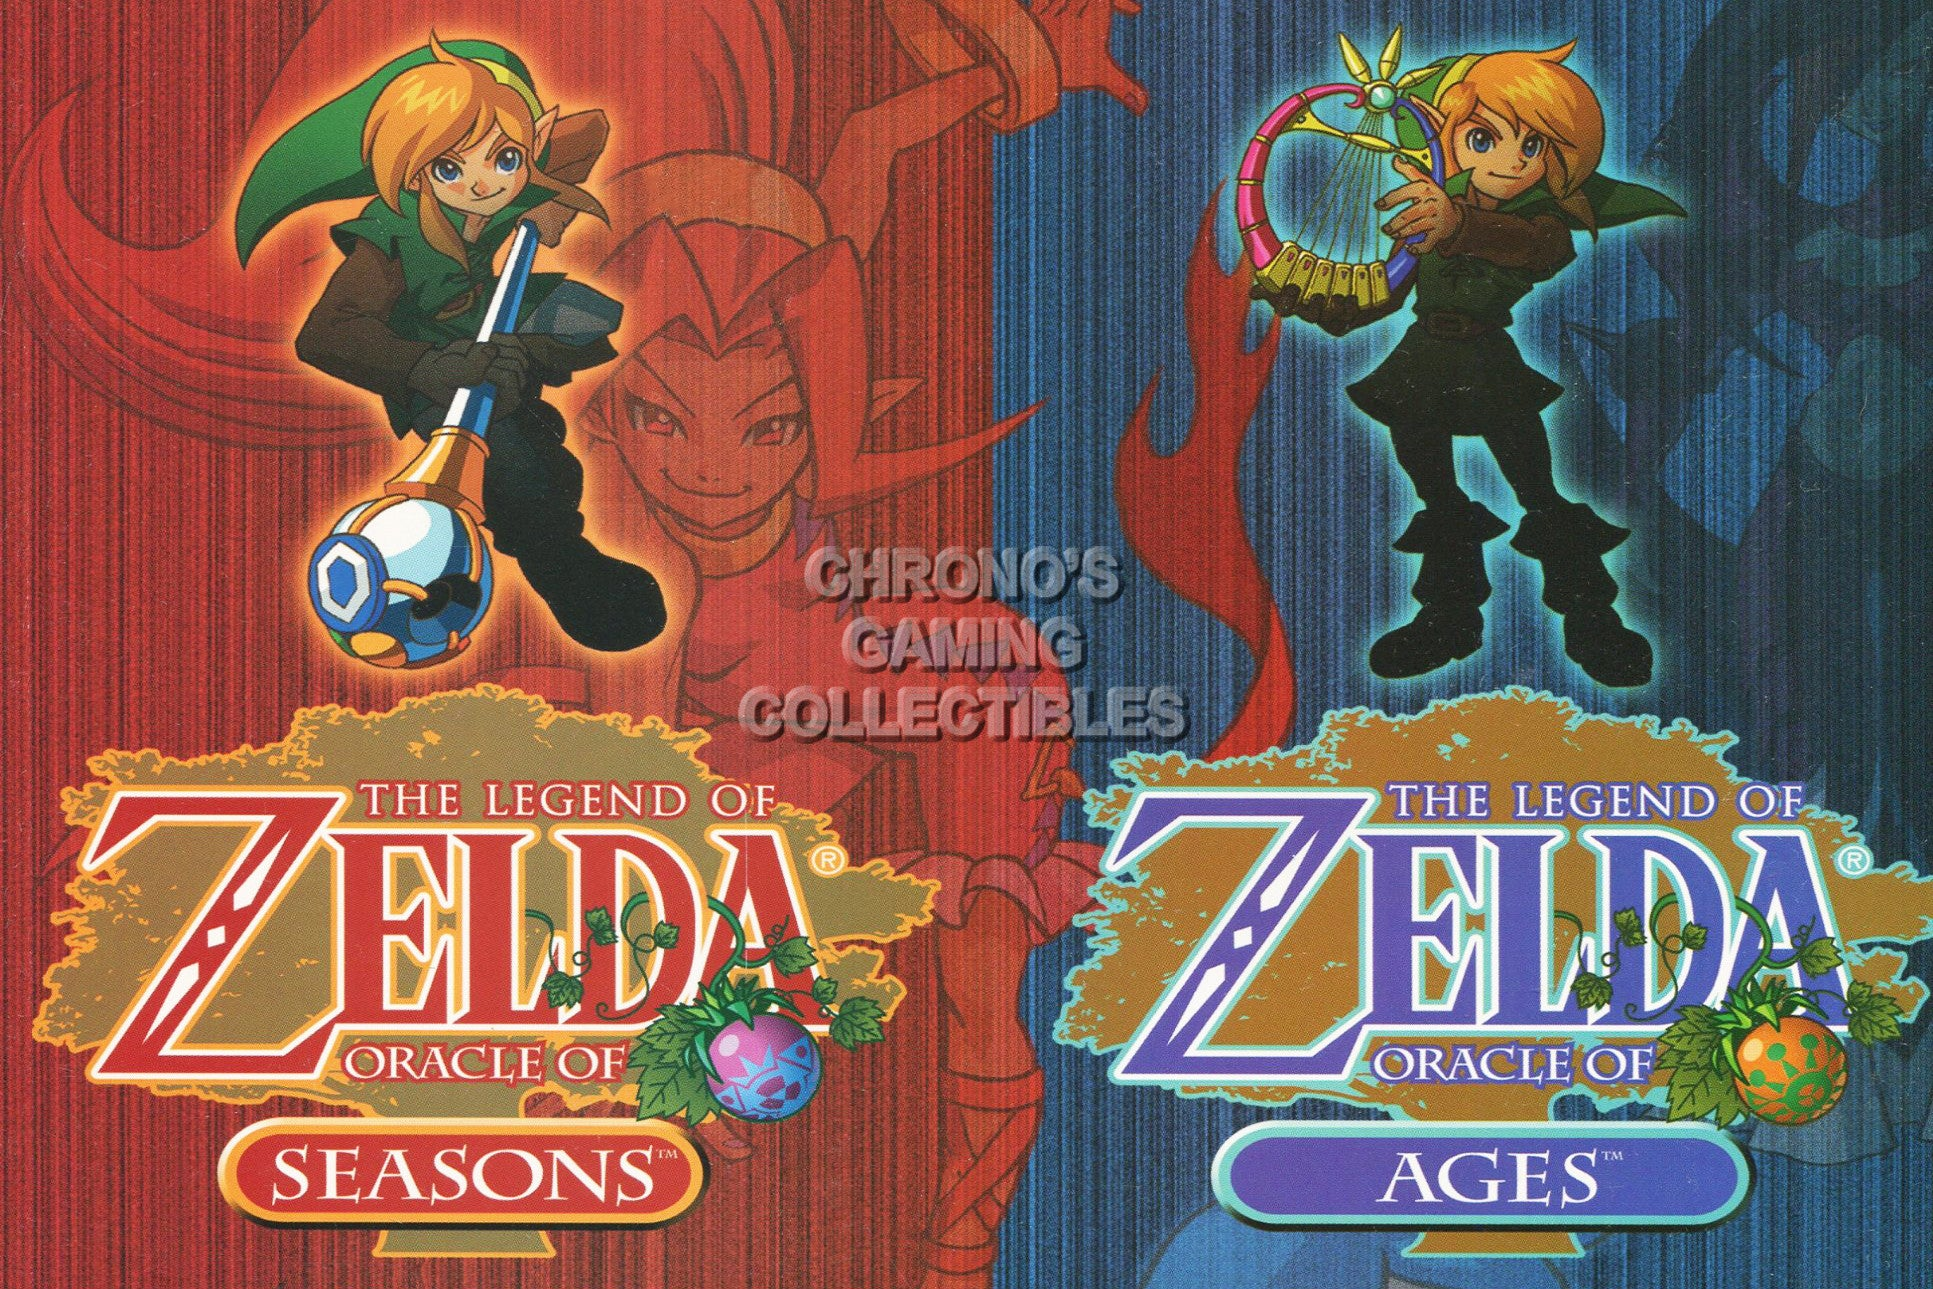 CGC Huge Poster - The Legend of Zelda Oracle of Ages Season Nintendo GBC -  ZEL002